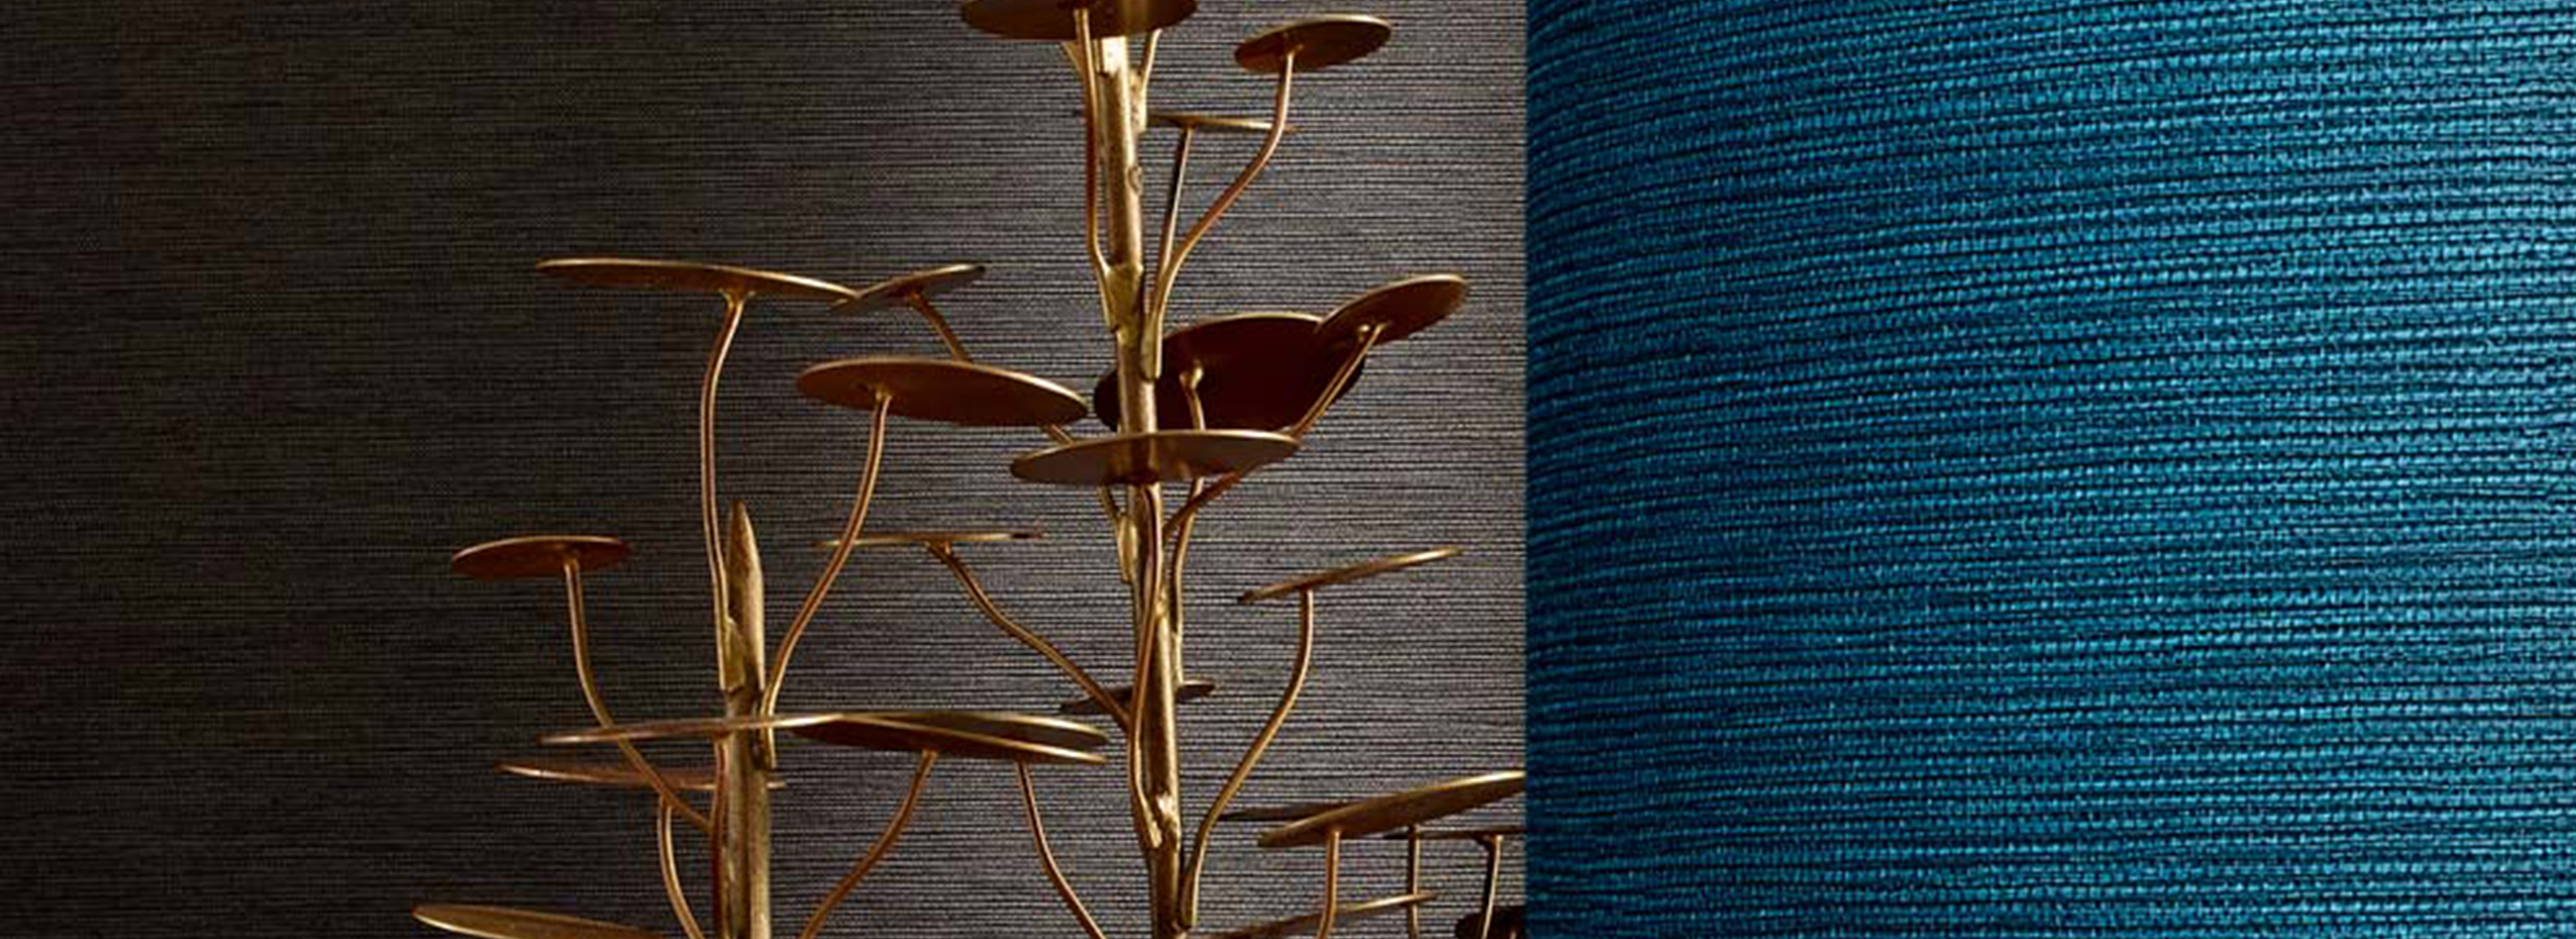 Zeteo Linen Wallcovering from LEVEY Commercial and Architectural Finishes